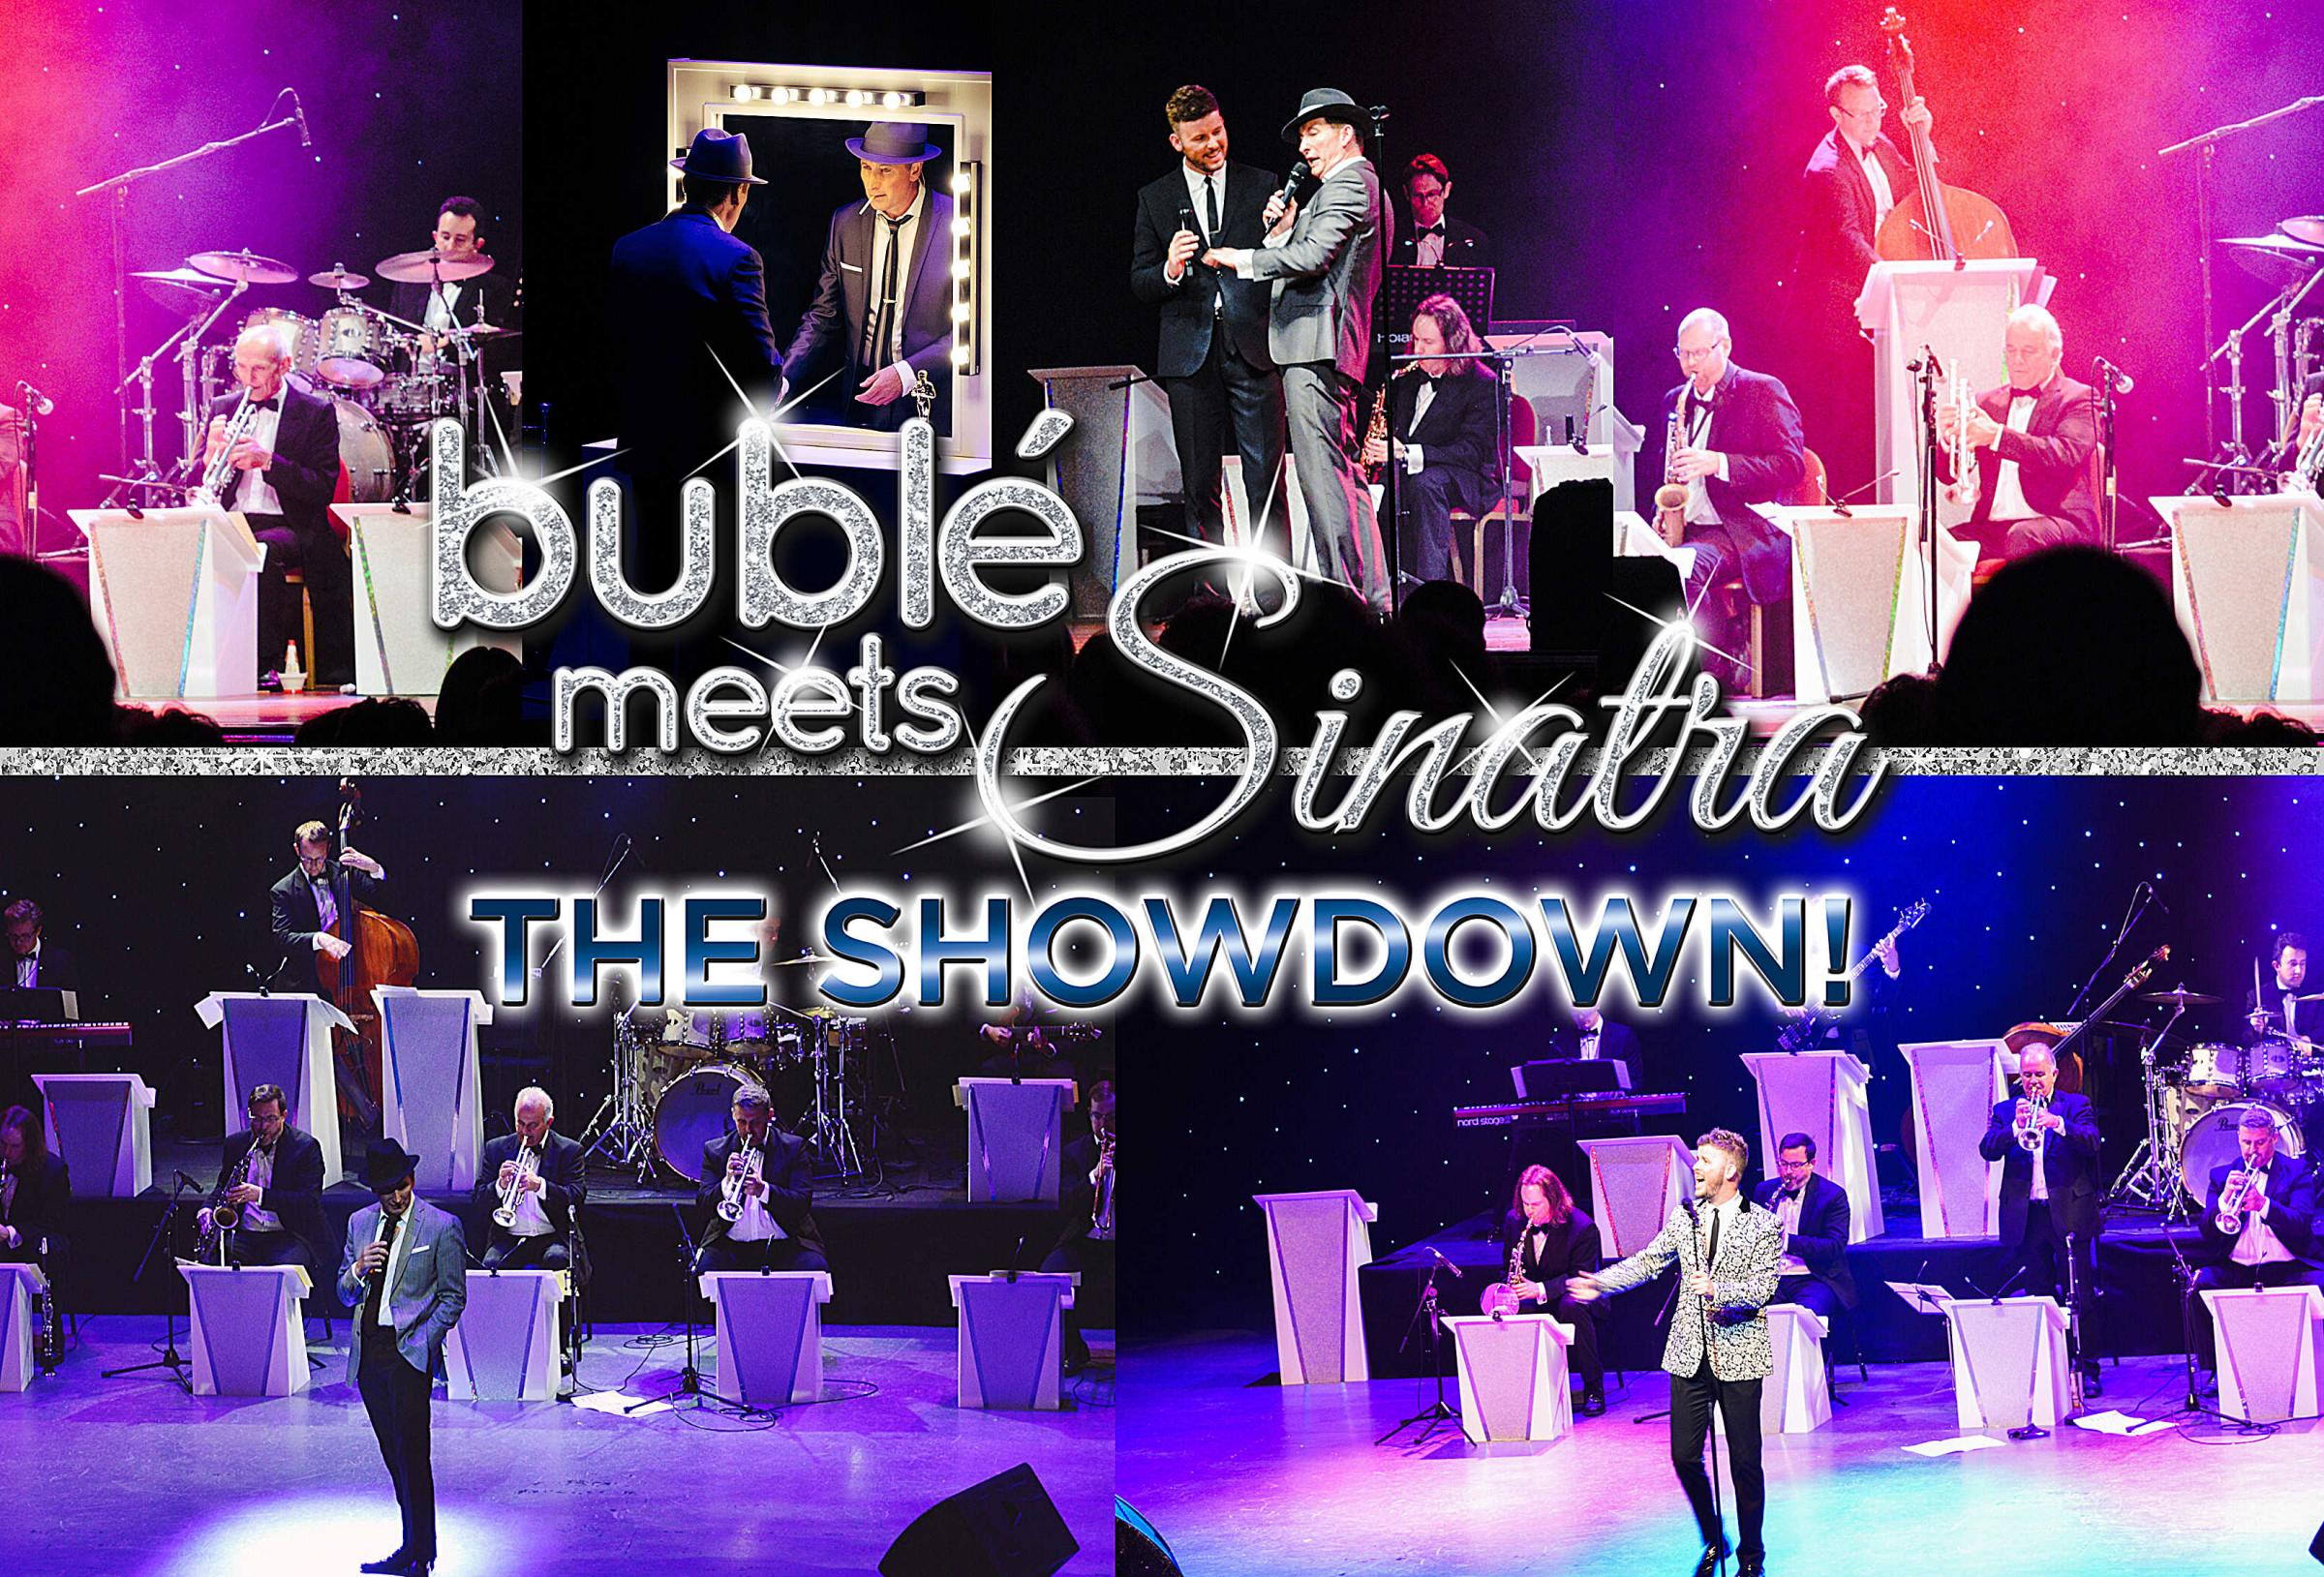 Buble Meets Sinatra: The Showdown! at Haymarket Theatre, Basingstoke